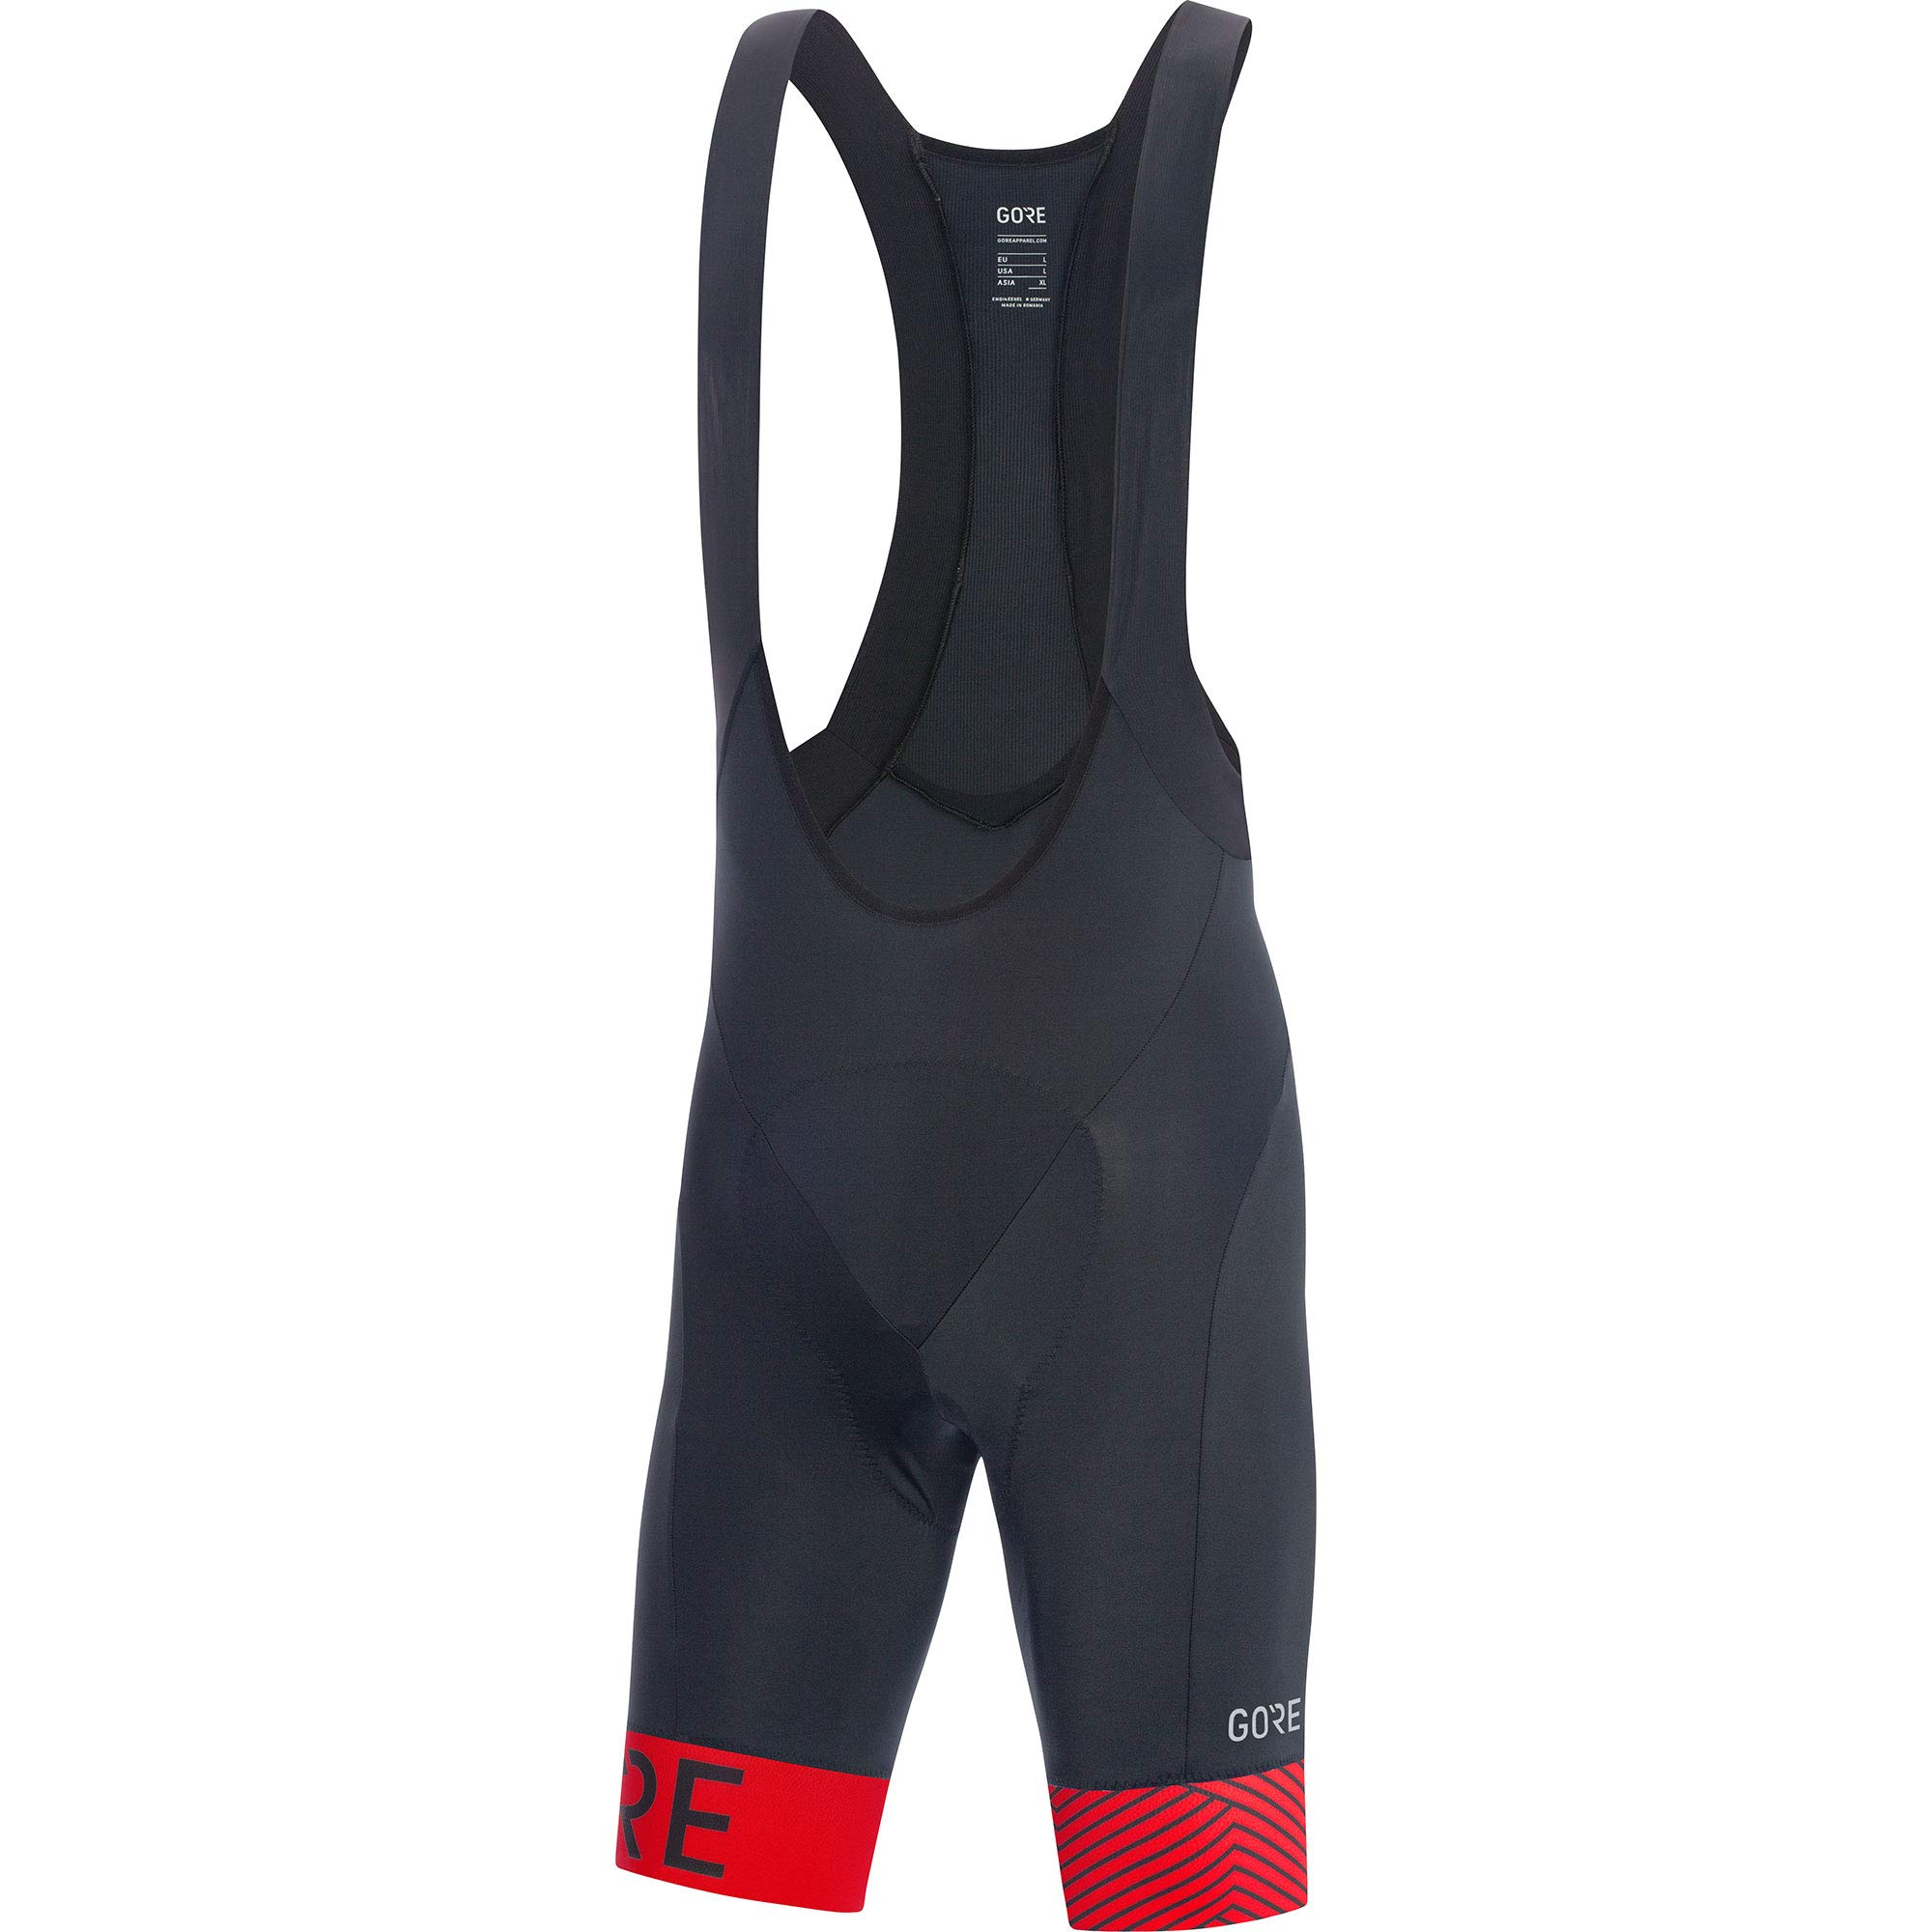 GORE Wear C5 Men's Short Cycling Bib Shorts With Seat Insert, S, Black/Rot